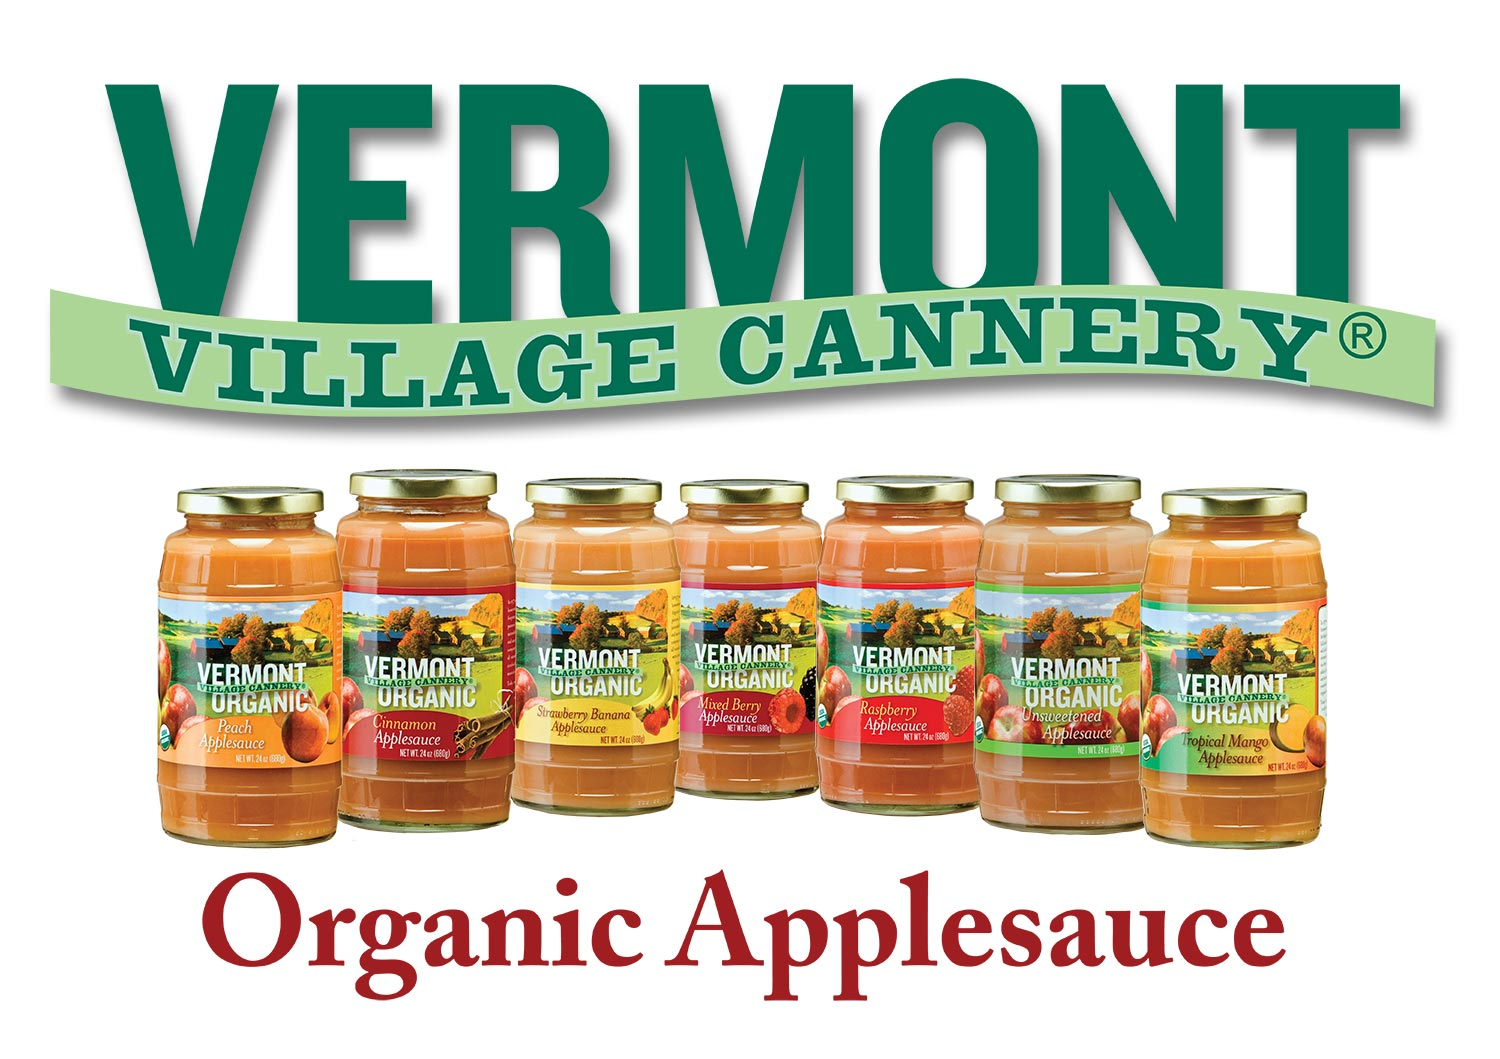 jars of applesauce in a row under text that says Vermont Village Cannery